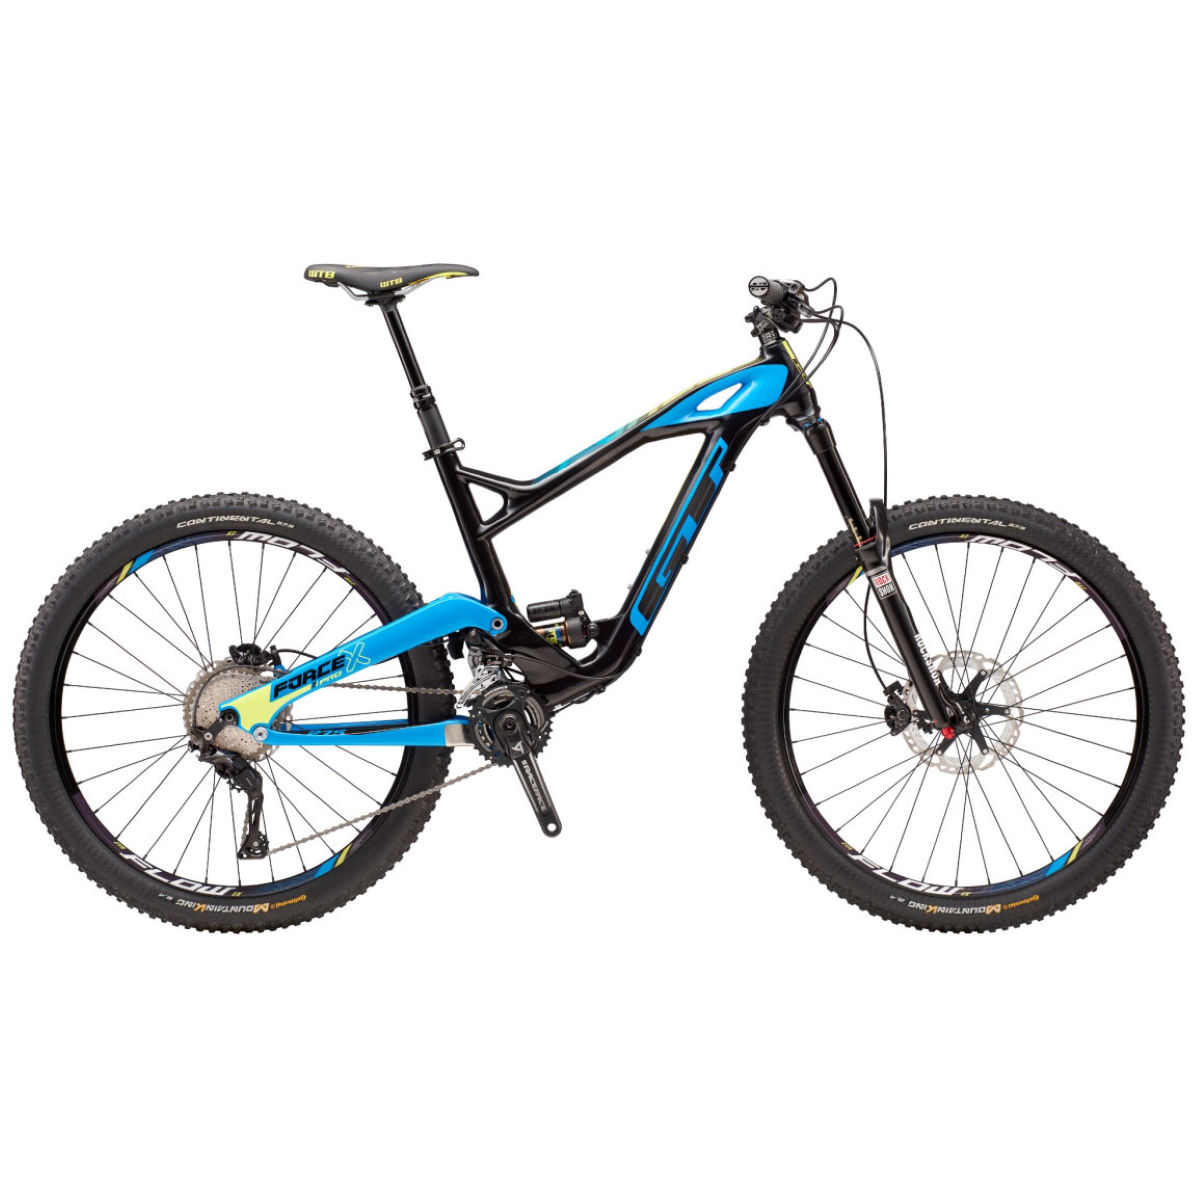 VTT GT Force Carbon Pro (2016) - Large Stock Bike Raw VTT tout suspendu